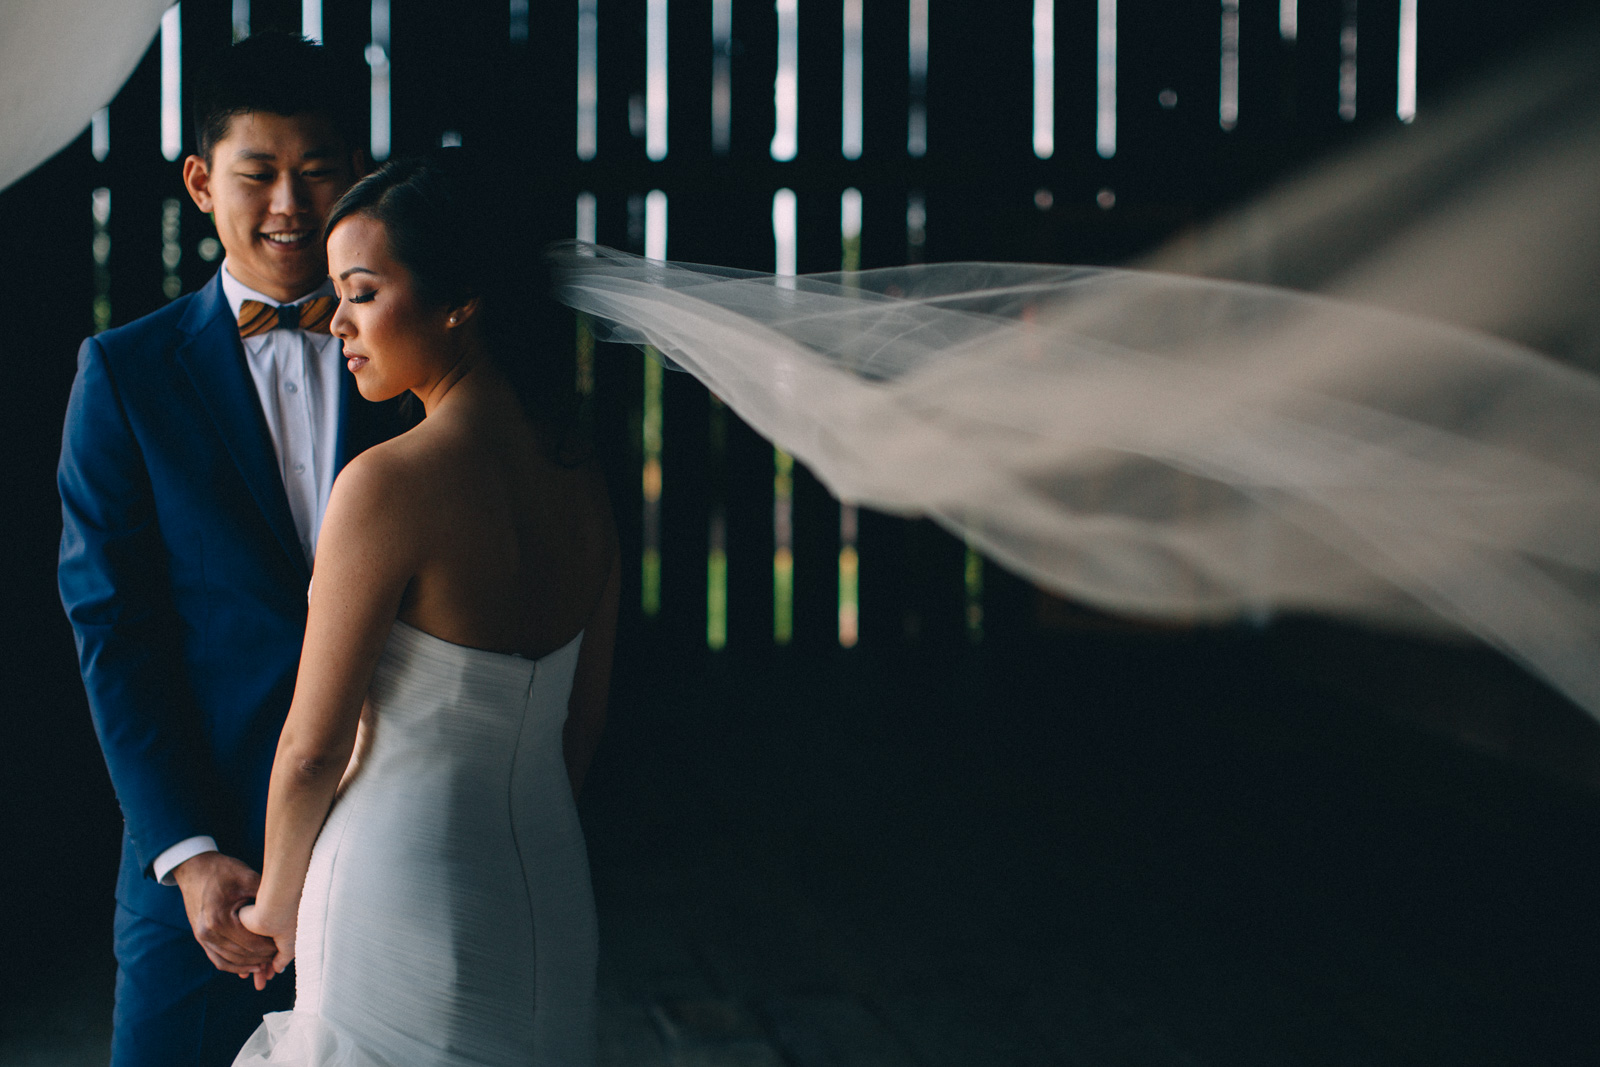 Cambium-Farms-wedding-photography-by-Sam-Wong-of-Artanis-Collective_22.jpg